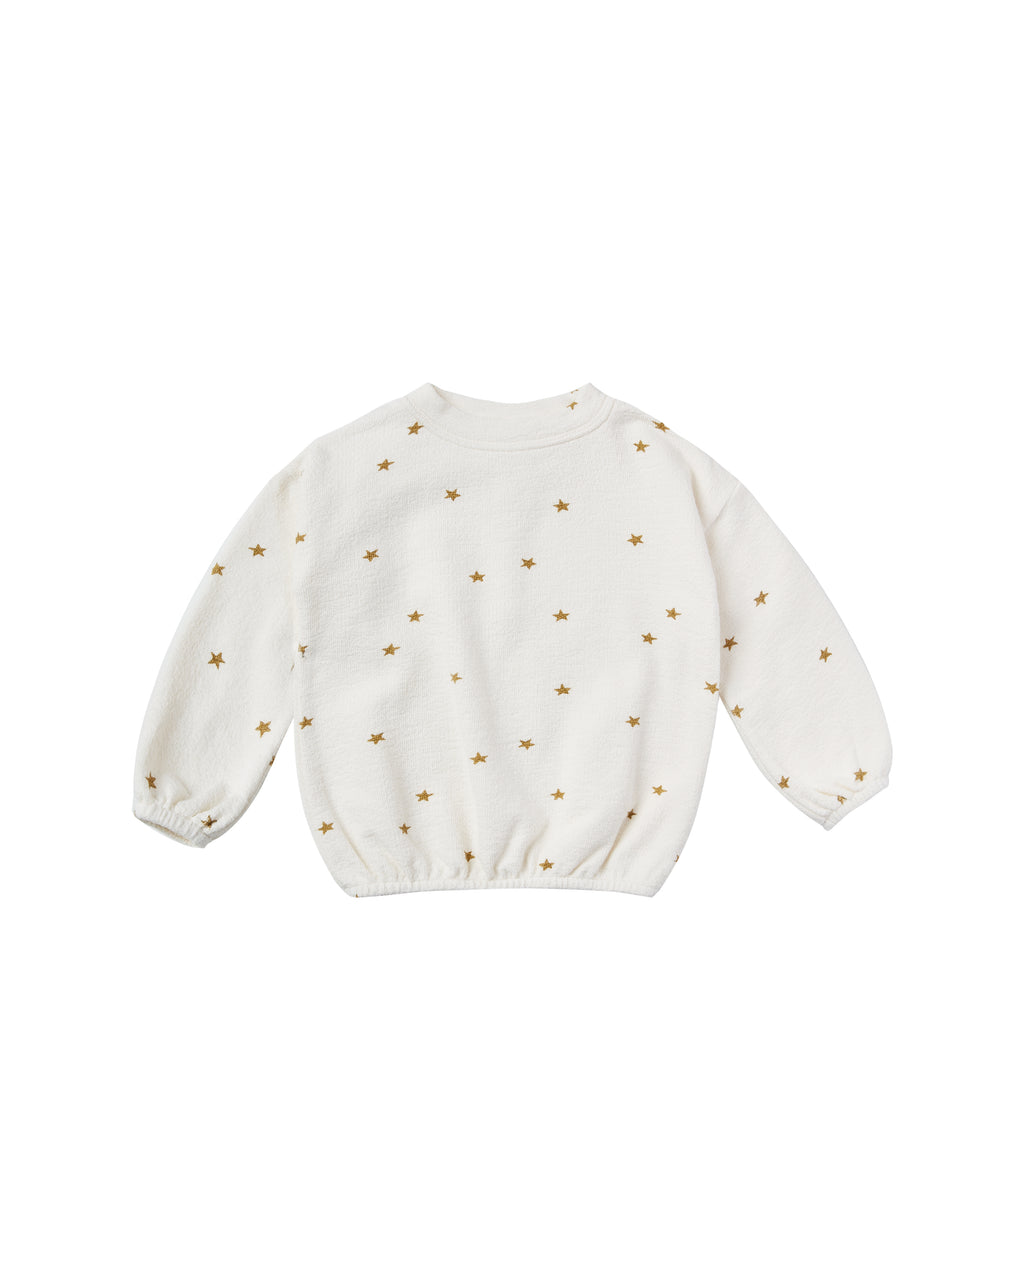 Rylee + Cru Star Slouchy Pullover Sweater - Ivory